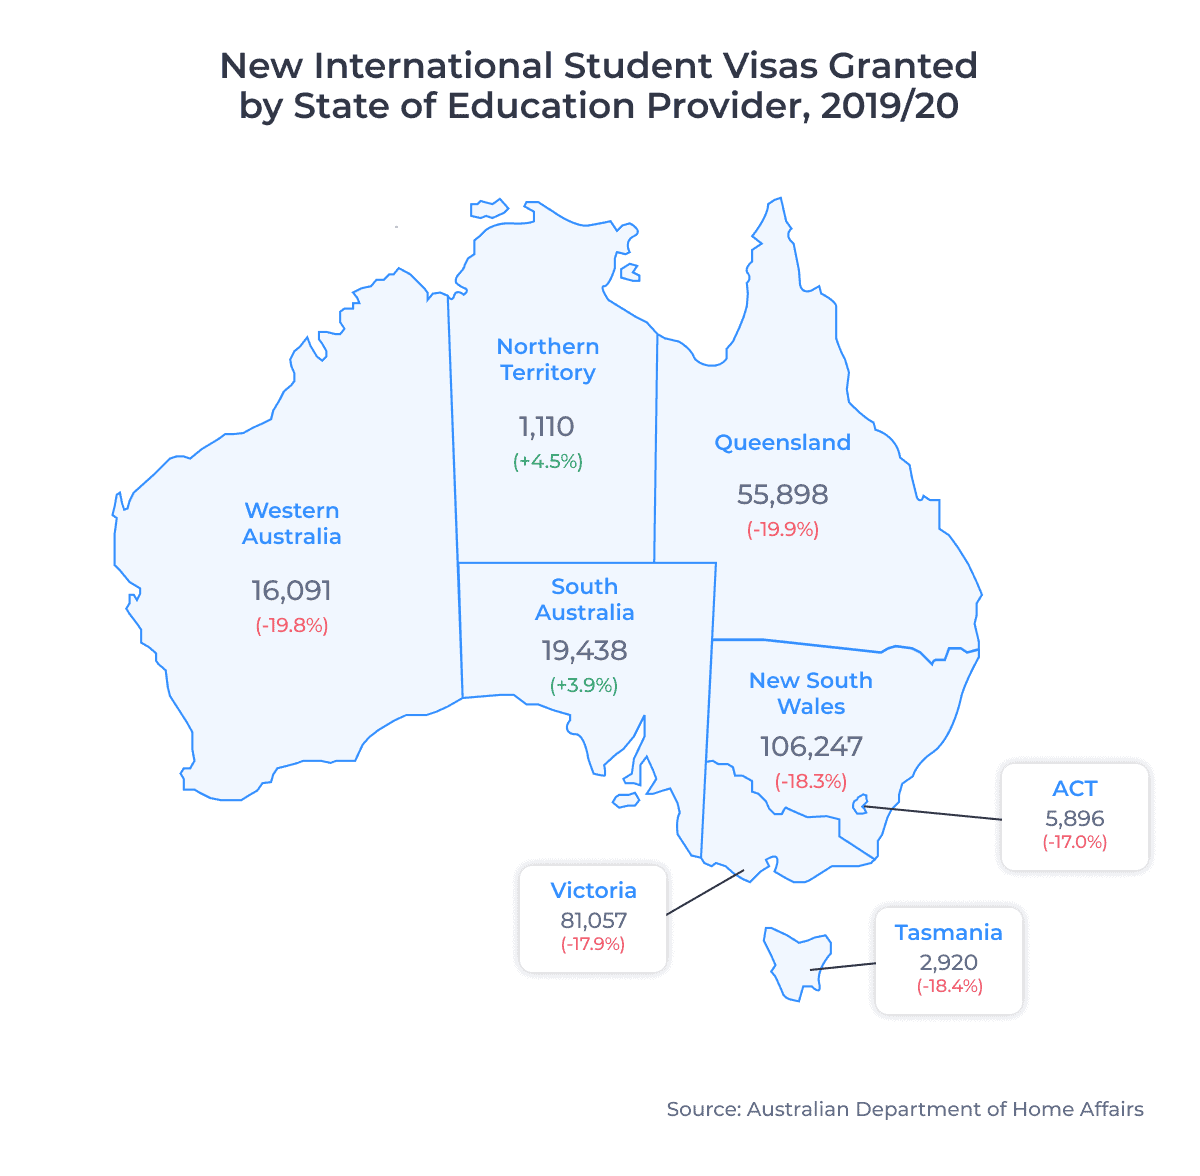 New International Student Visas Granted by State of Education Provider, 2019/20